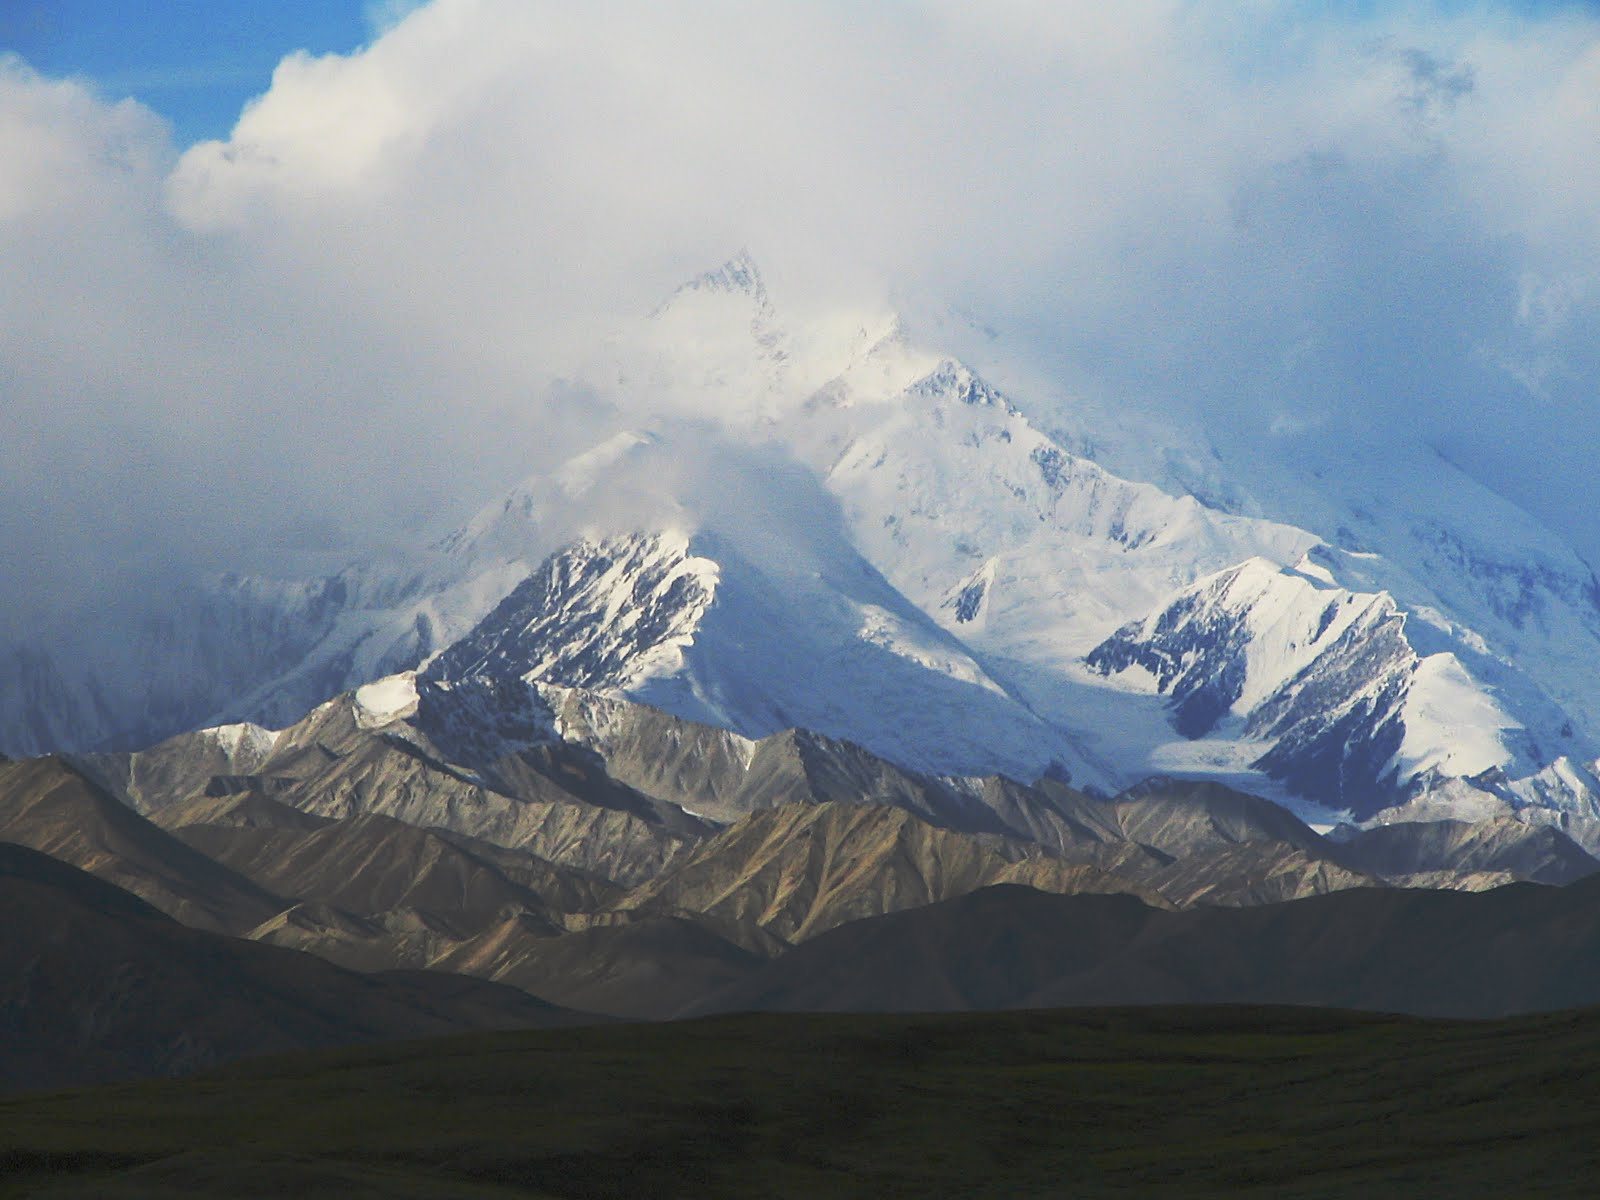 Subpeaks and nearby mountains of Mount McKinley (Denali) ~ Great Mountain